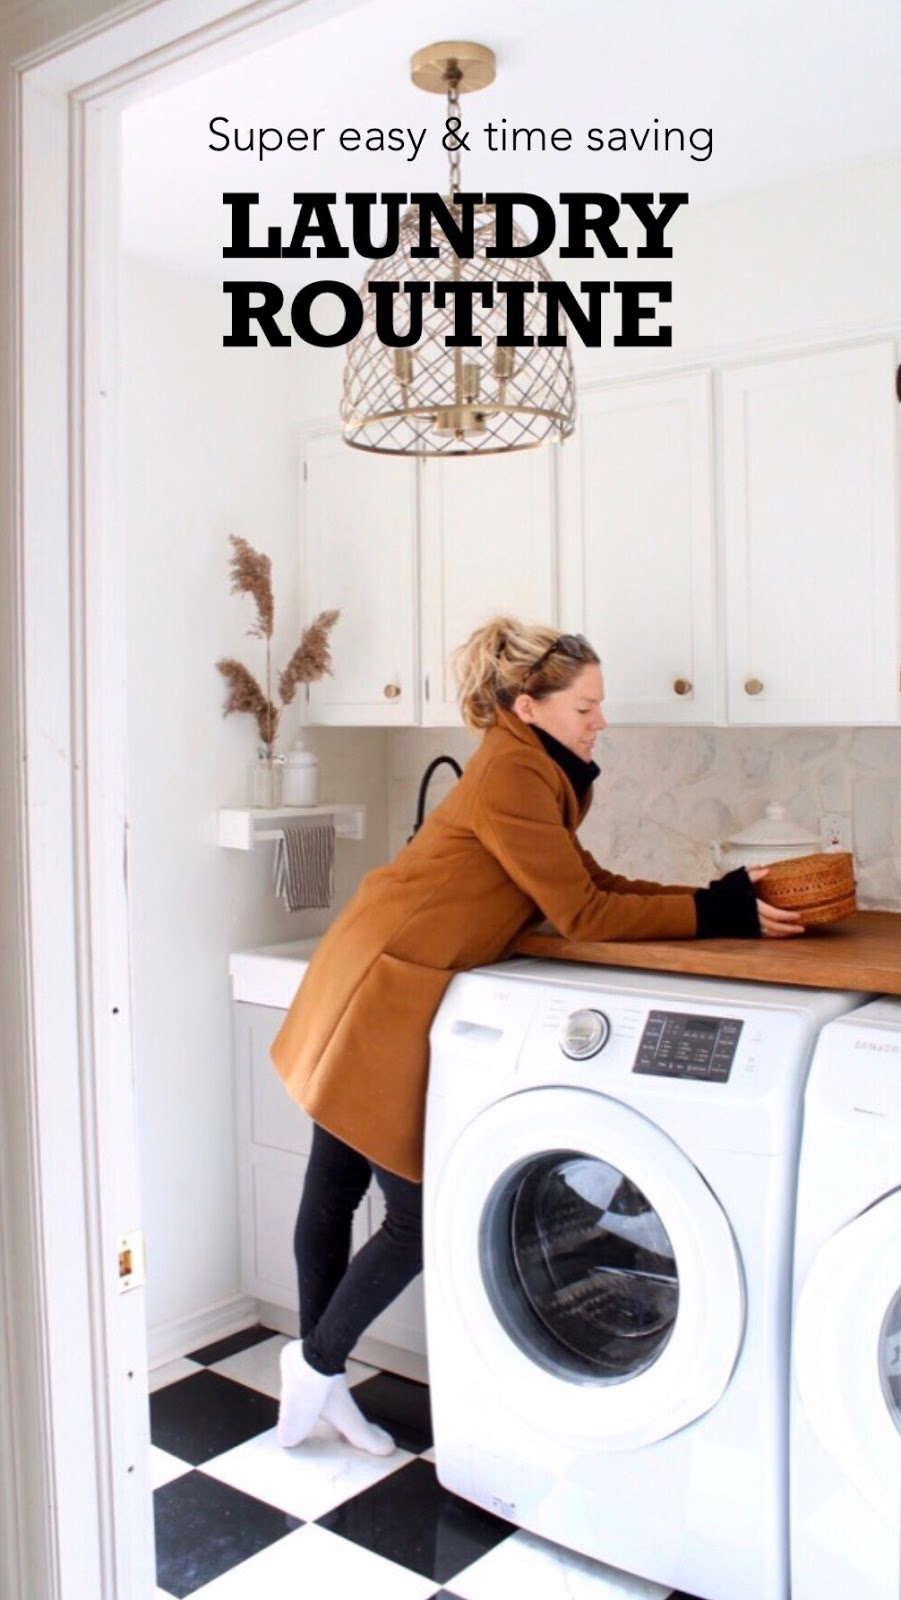 Laundry Routine that is Simple and Easy